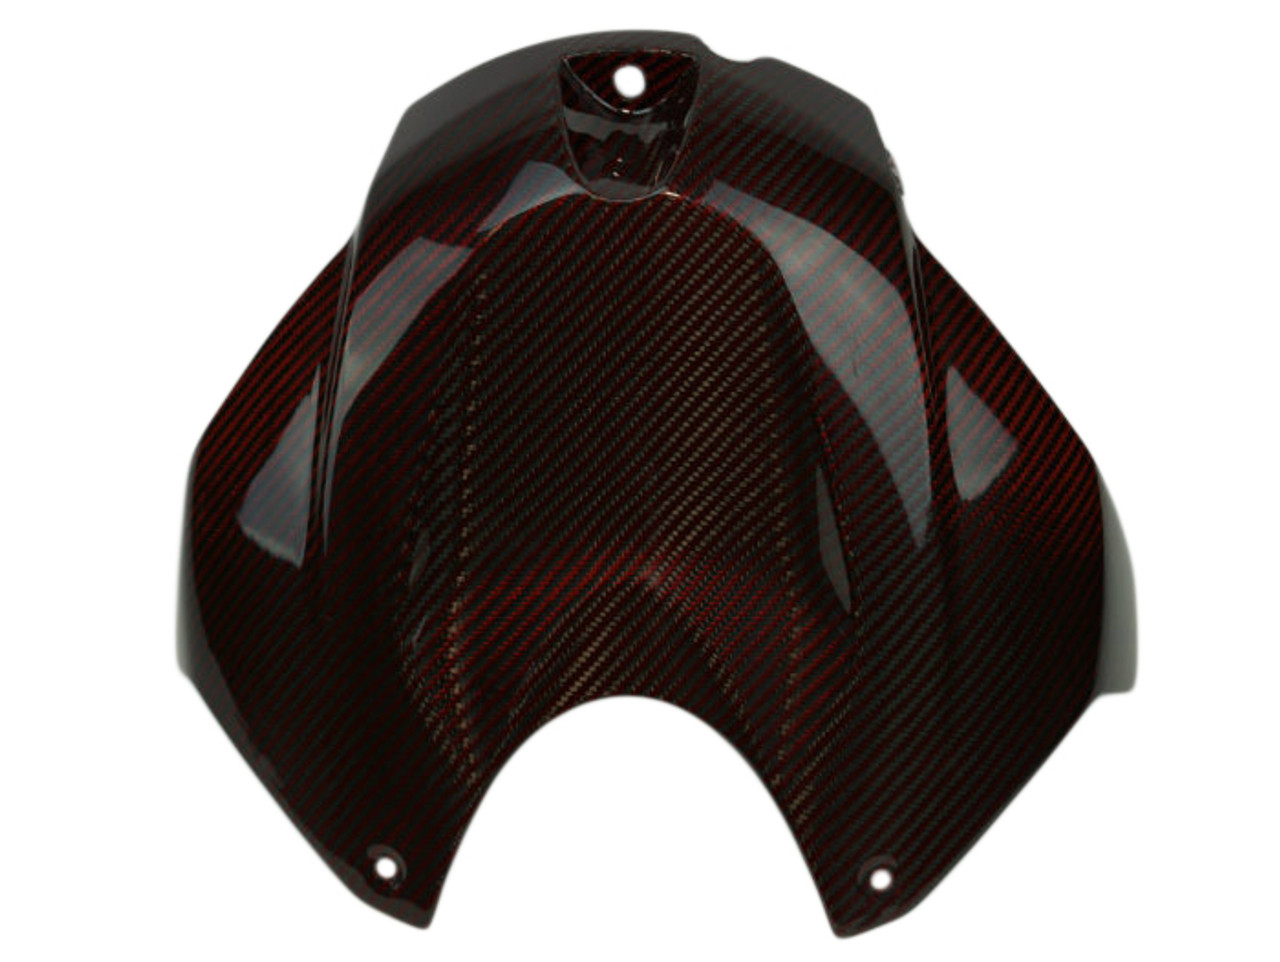 Tank Cover in Black and Red Glossy Twill Weave Carbon Fiber for BMW S1000R